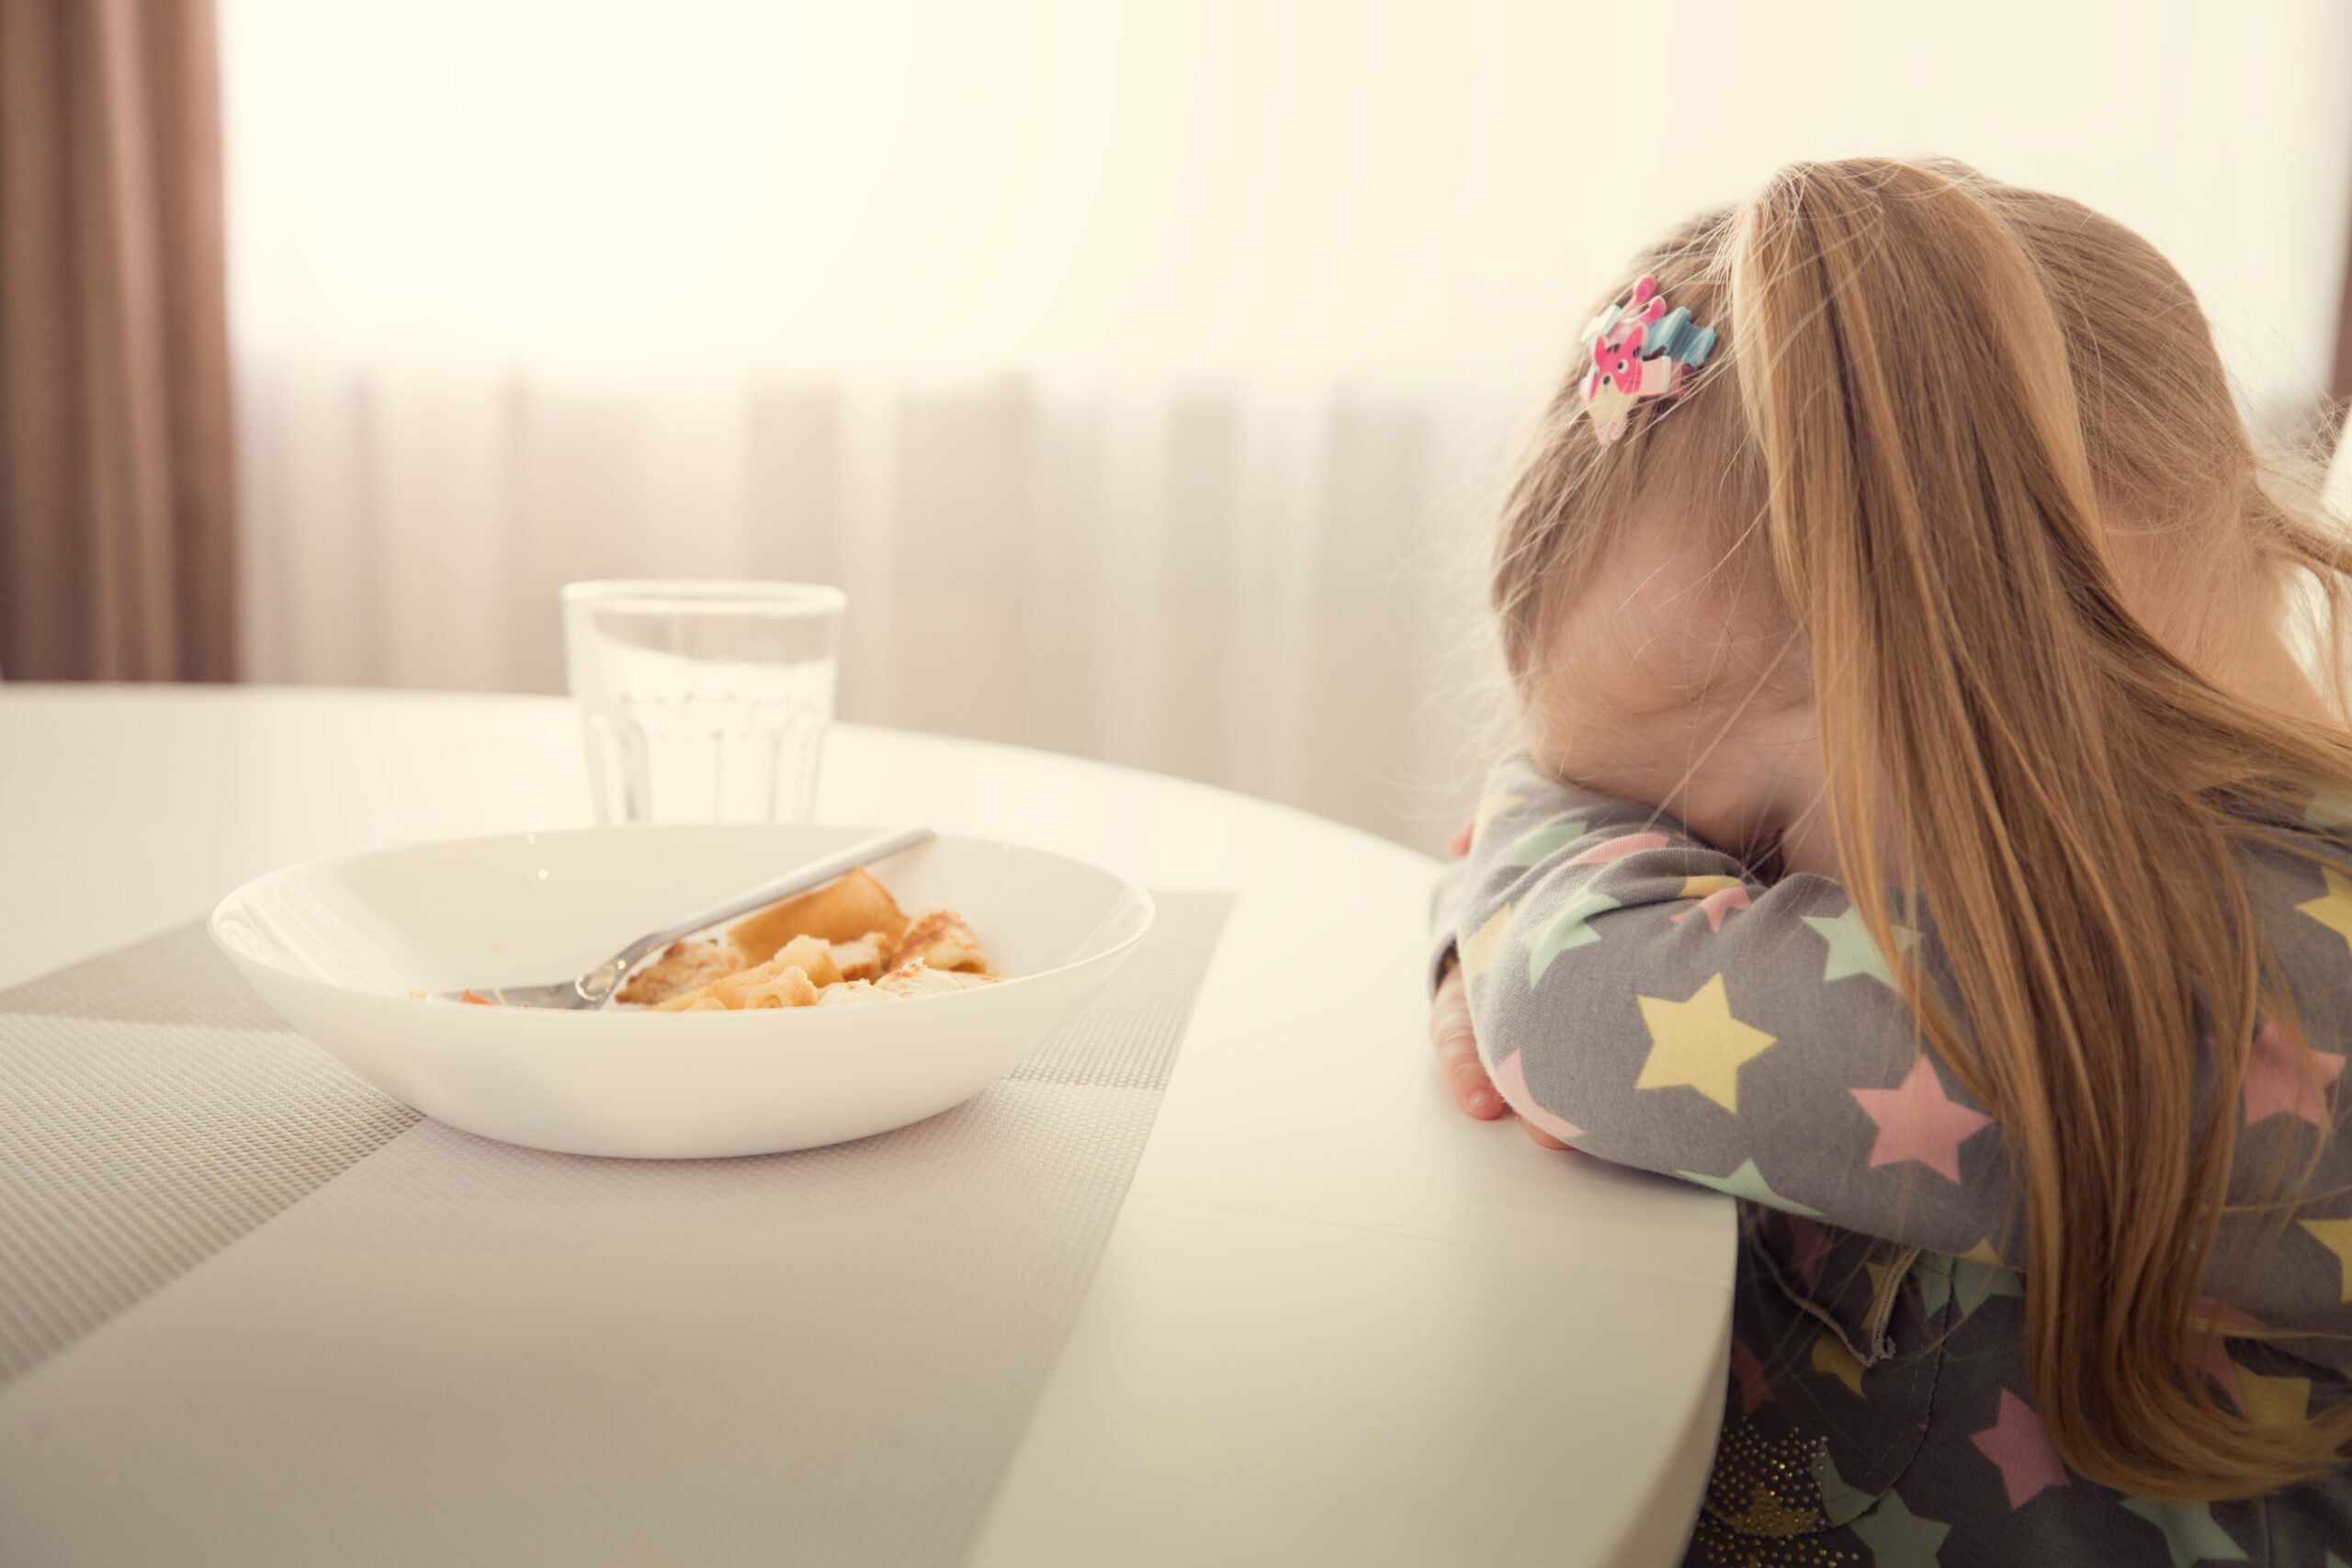 Food Refusal; Maybe It's Not About the Food